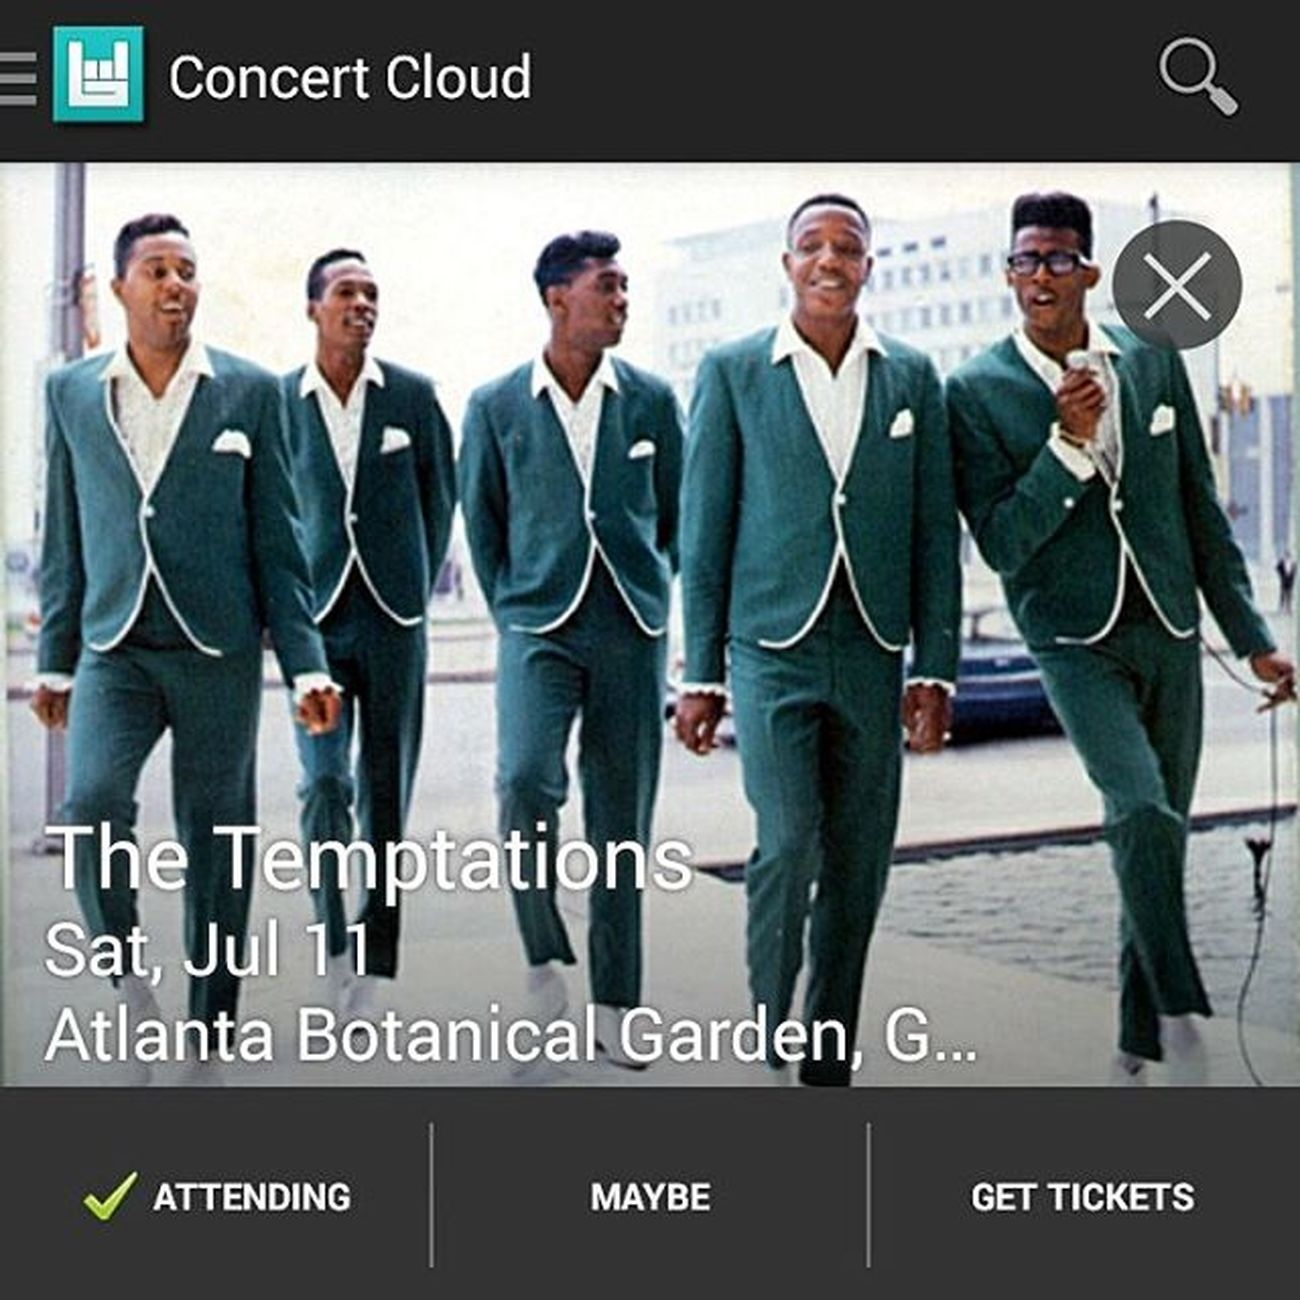 My weekend plans. TheTemptations Botanicalgardens Atlanta Georgia ATL